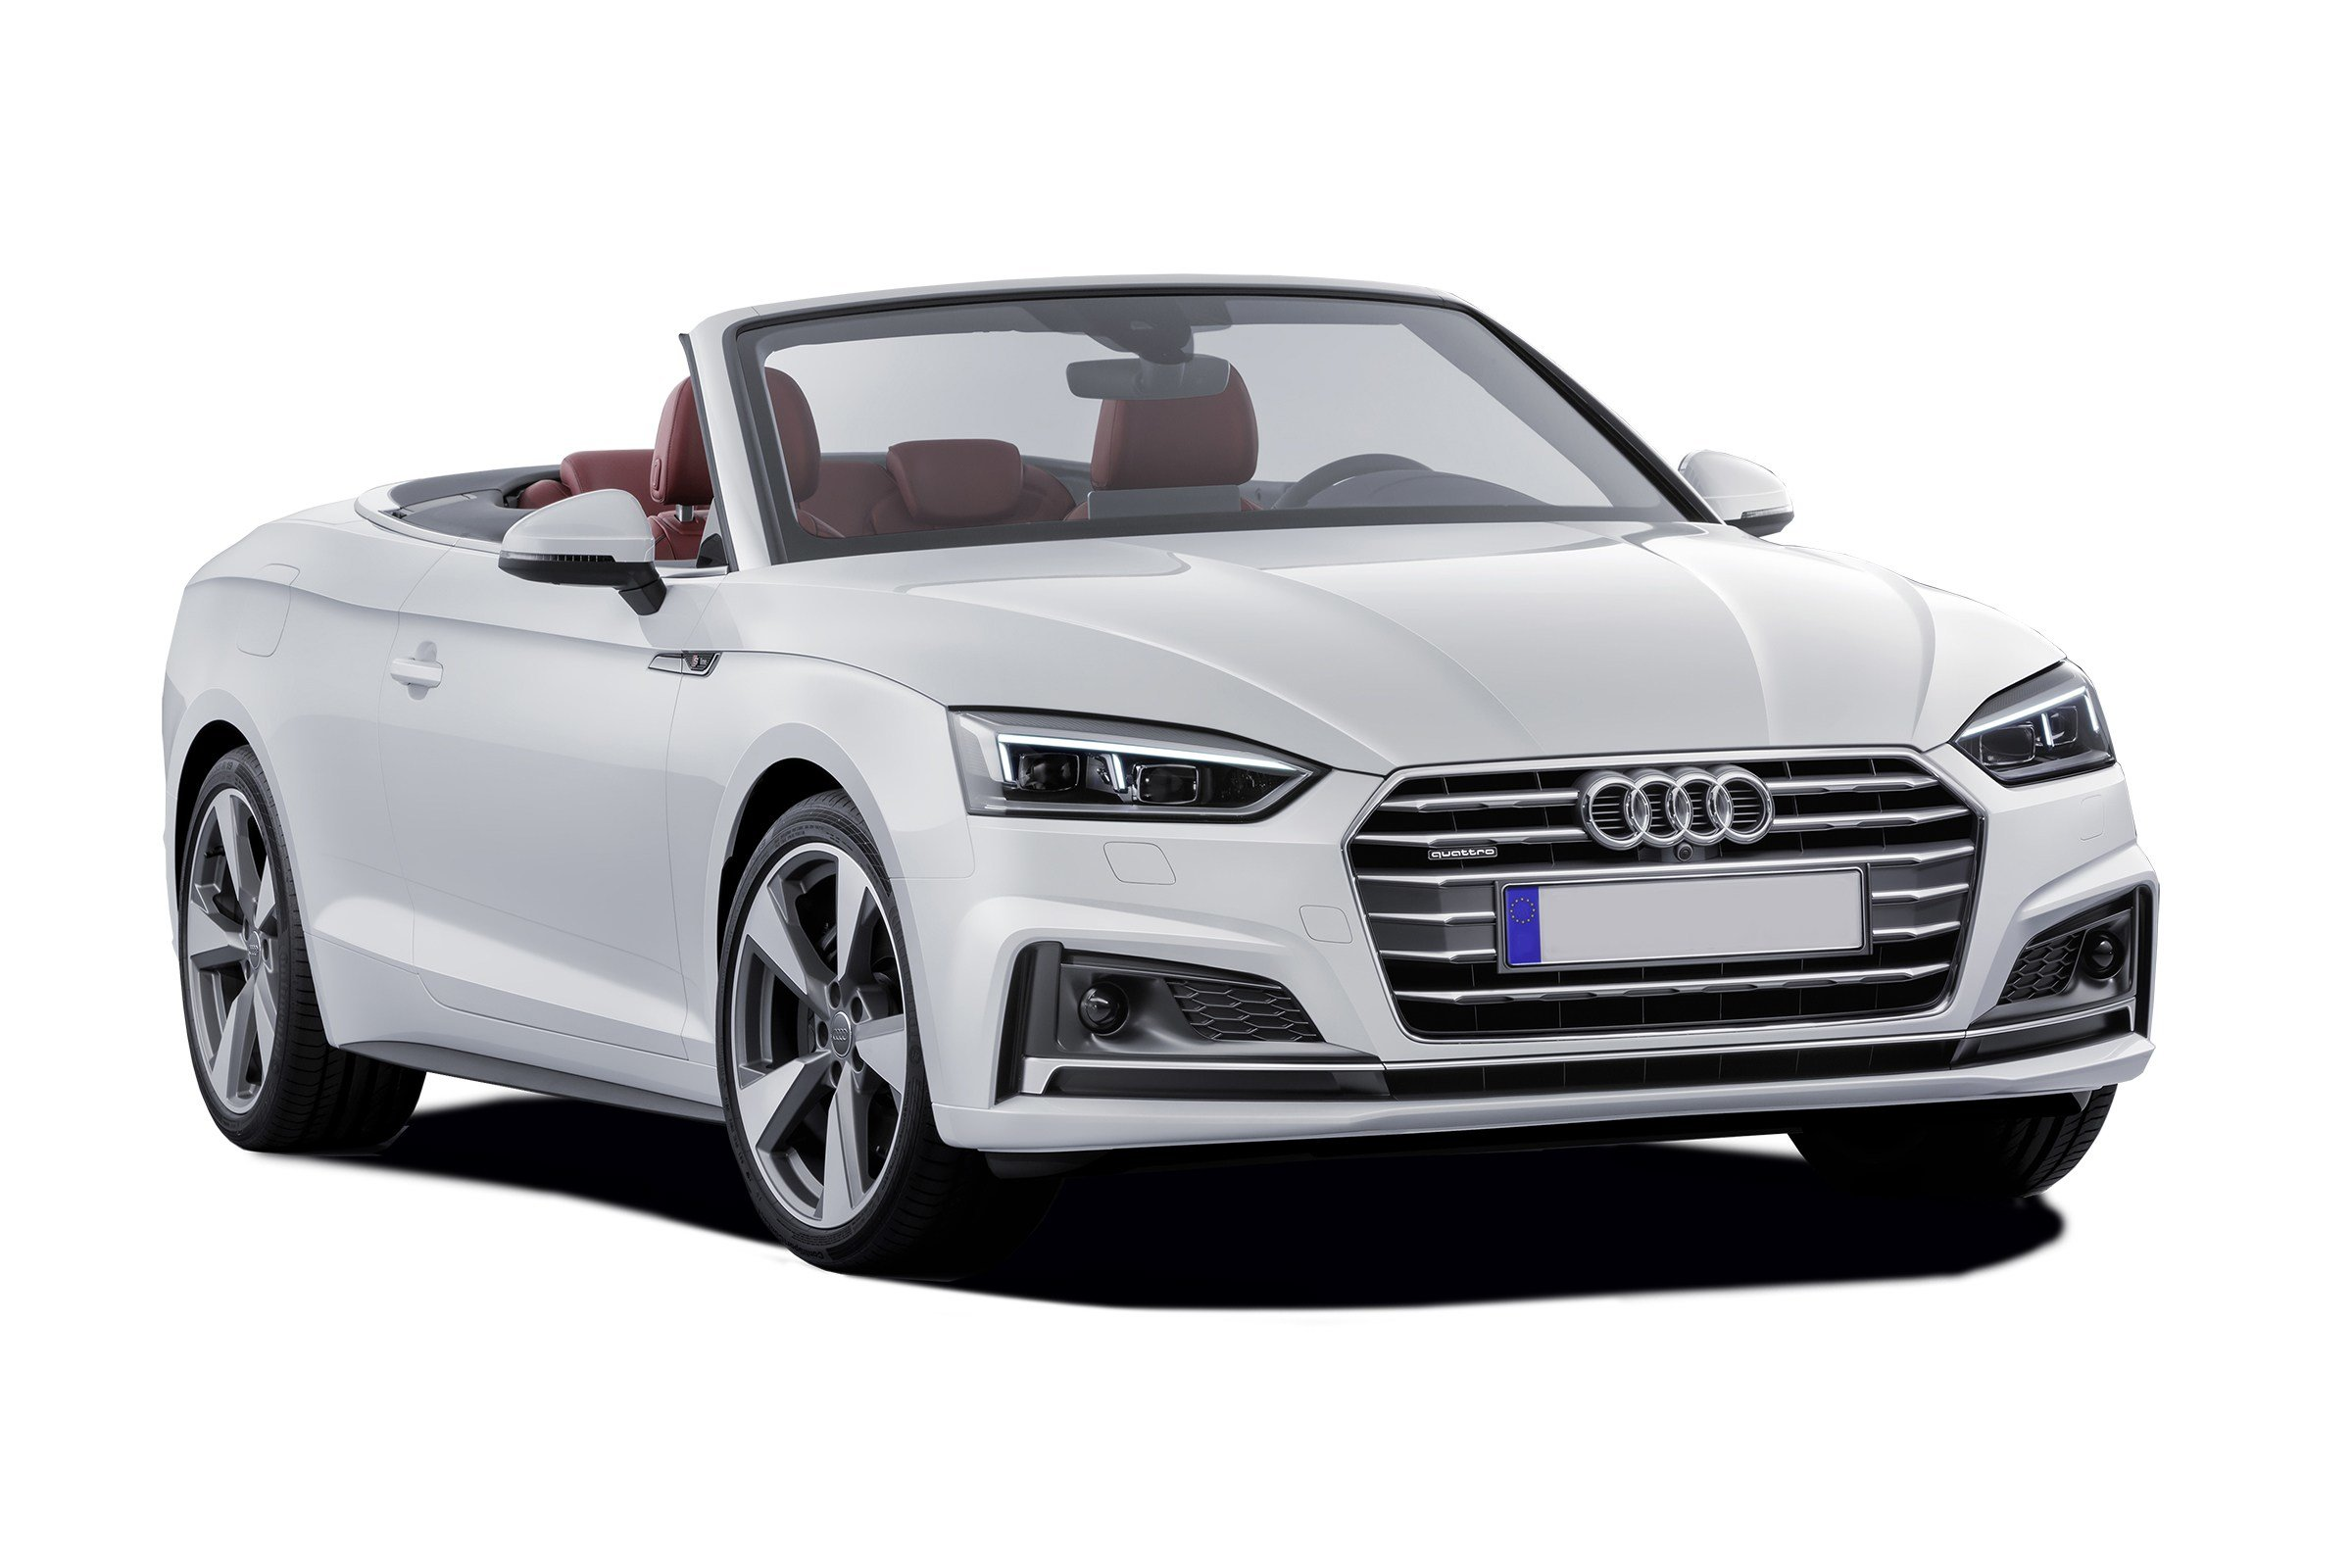 Latest Audi A5 Cabriolet Convertible Review Carbuyer Free Download